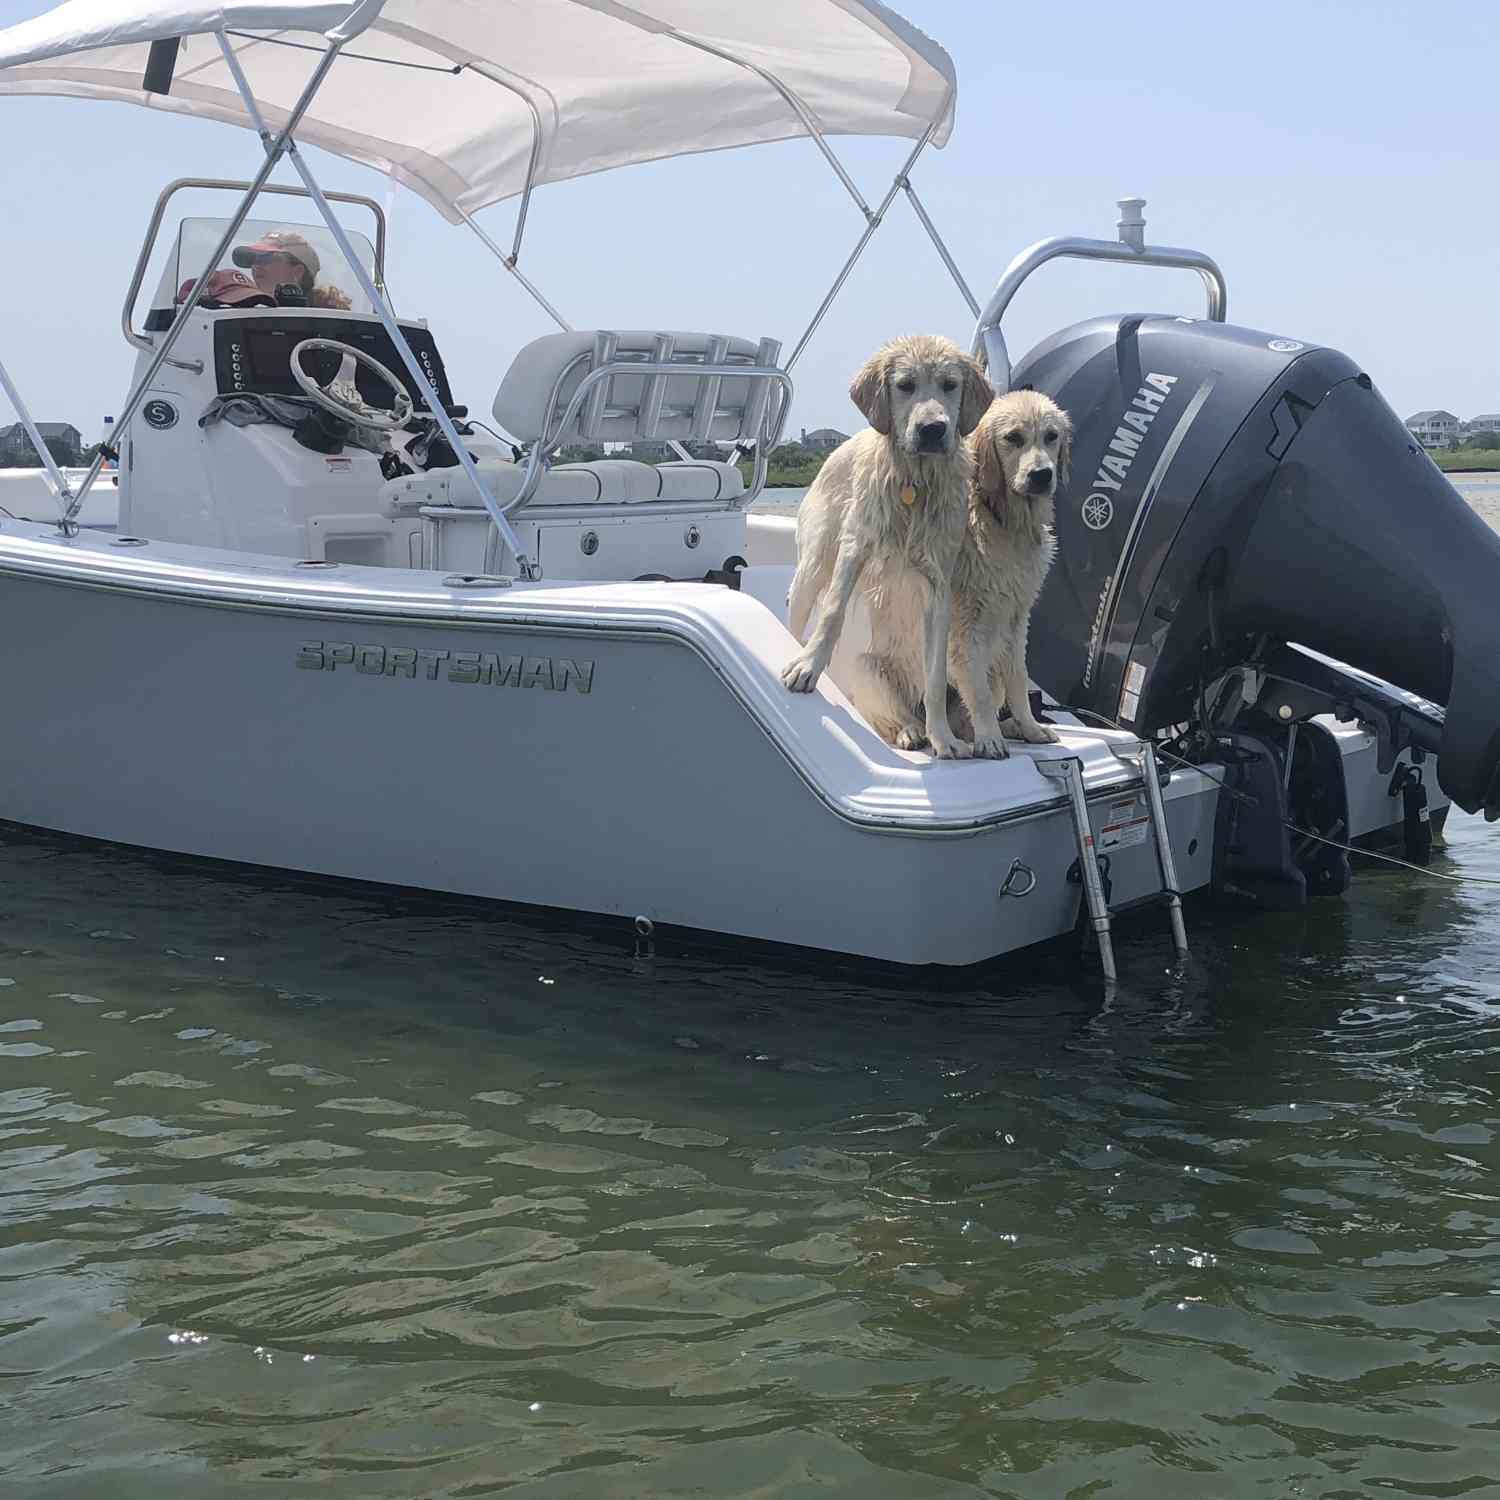 Title: Pet-friendly boat - On board their Sportsman Open 212 Center Console - Location: Westerly, RI. Participating in the Photo Contest #SportsmanMay2020